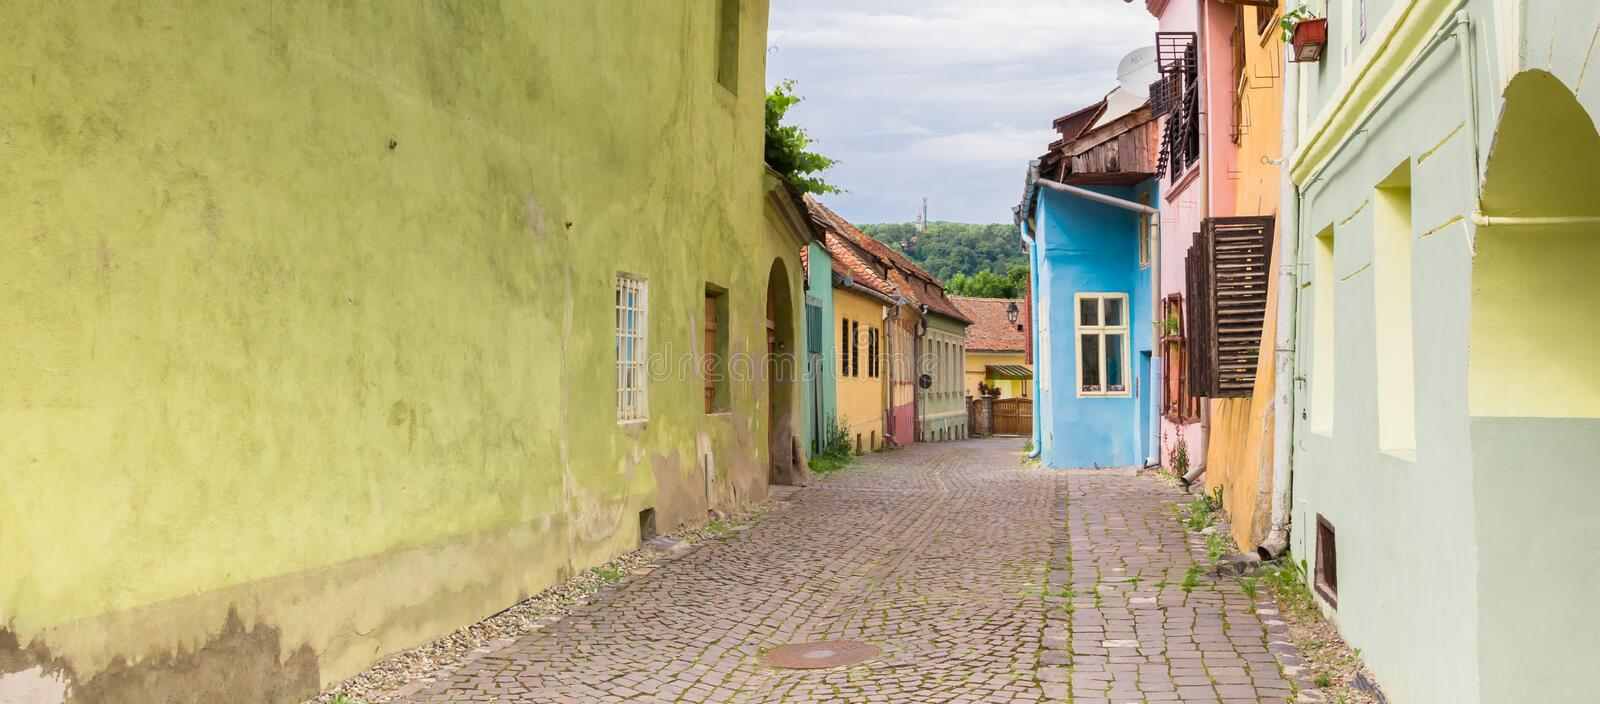 Panorama of a colorful cobblestoned street in Sighisoara royalty free stock photo